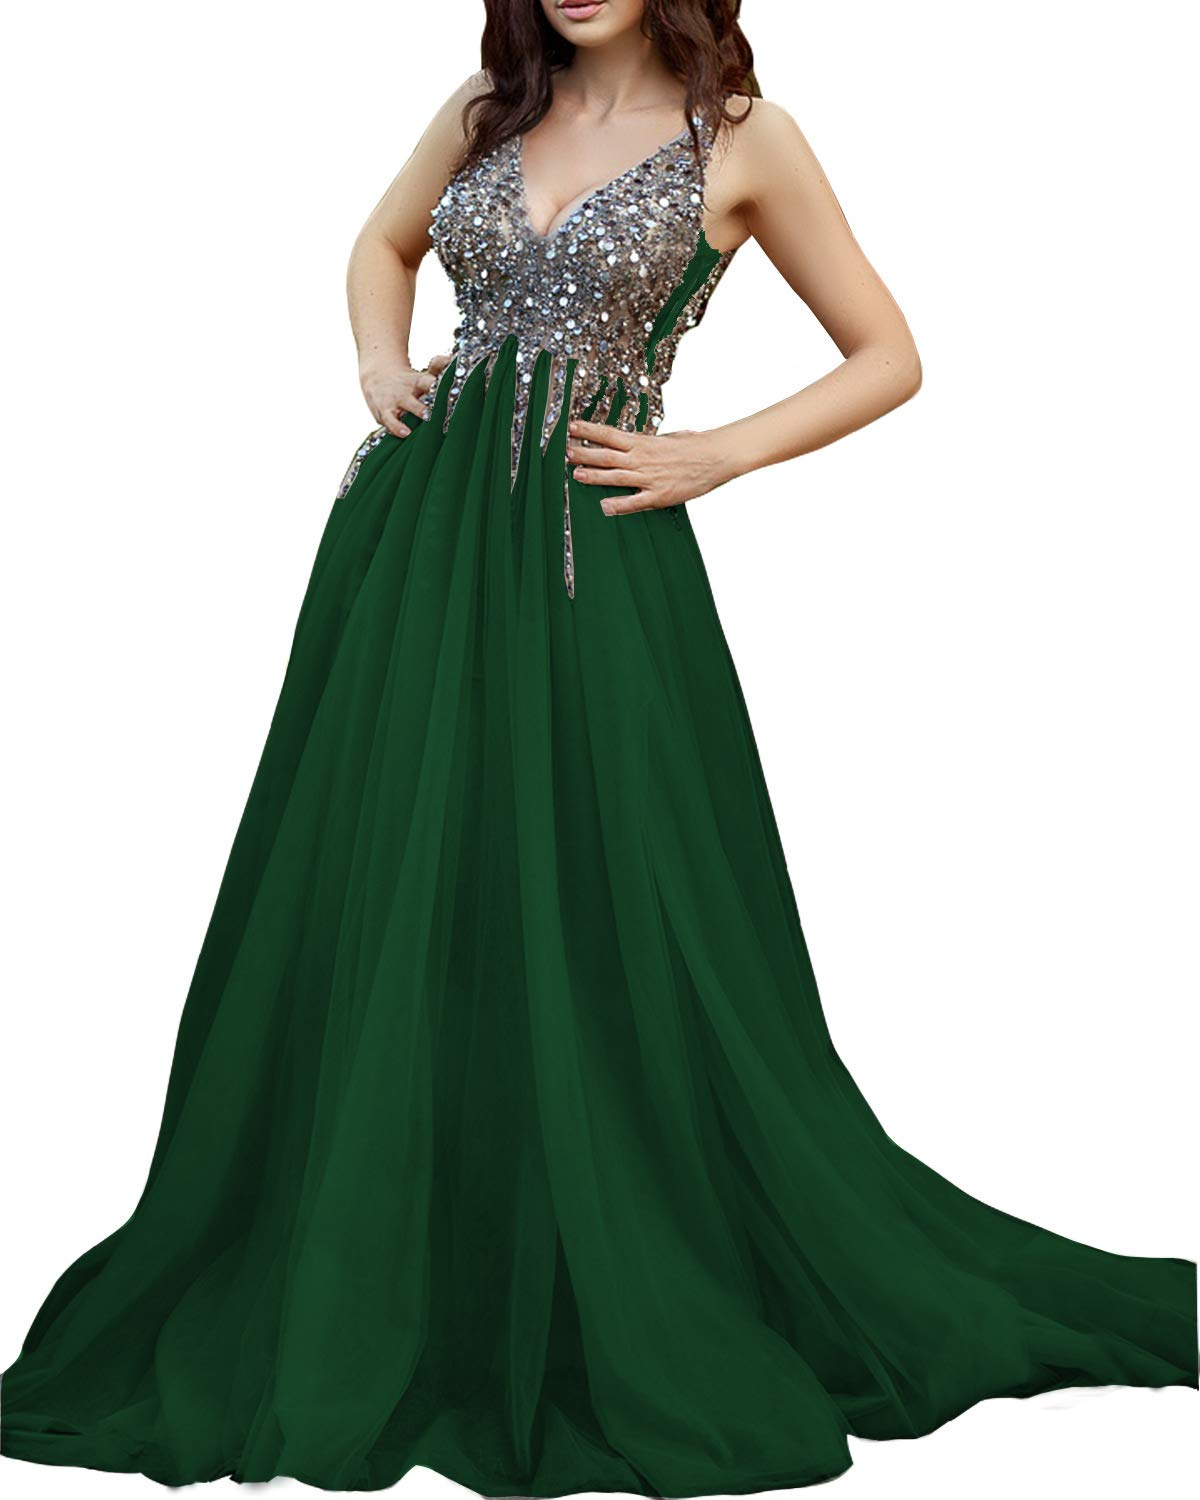 Ever-Beauty Womens Beaded V-Neck Prom Dress 2019 Long Sleeveless Tulle  Evening Formal Ball Gown Aline Emerald Green Plus Size 20